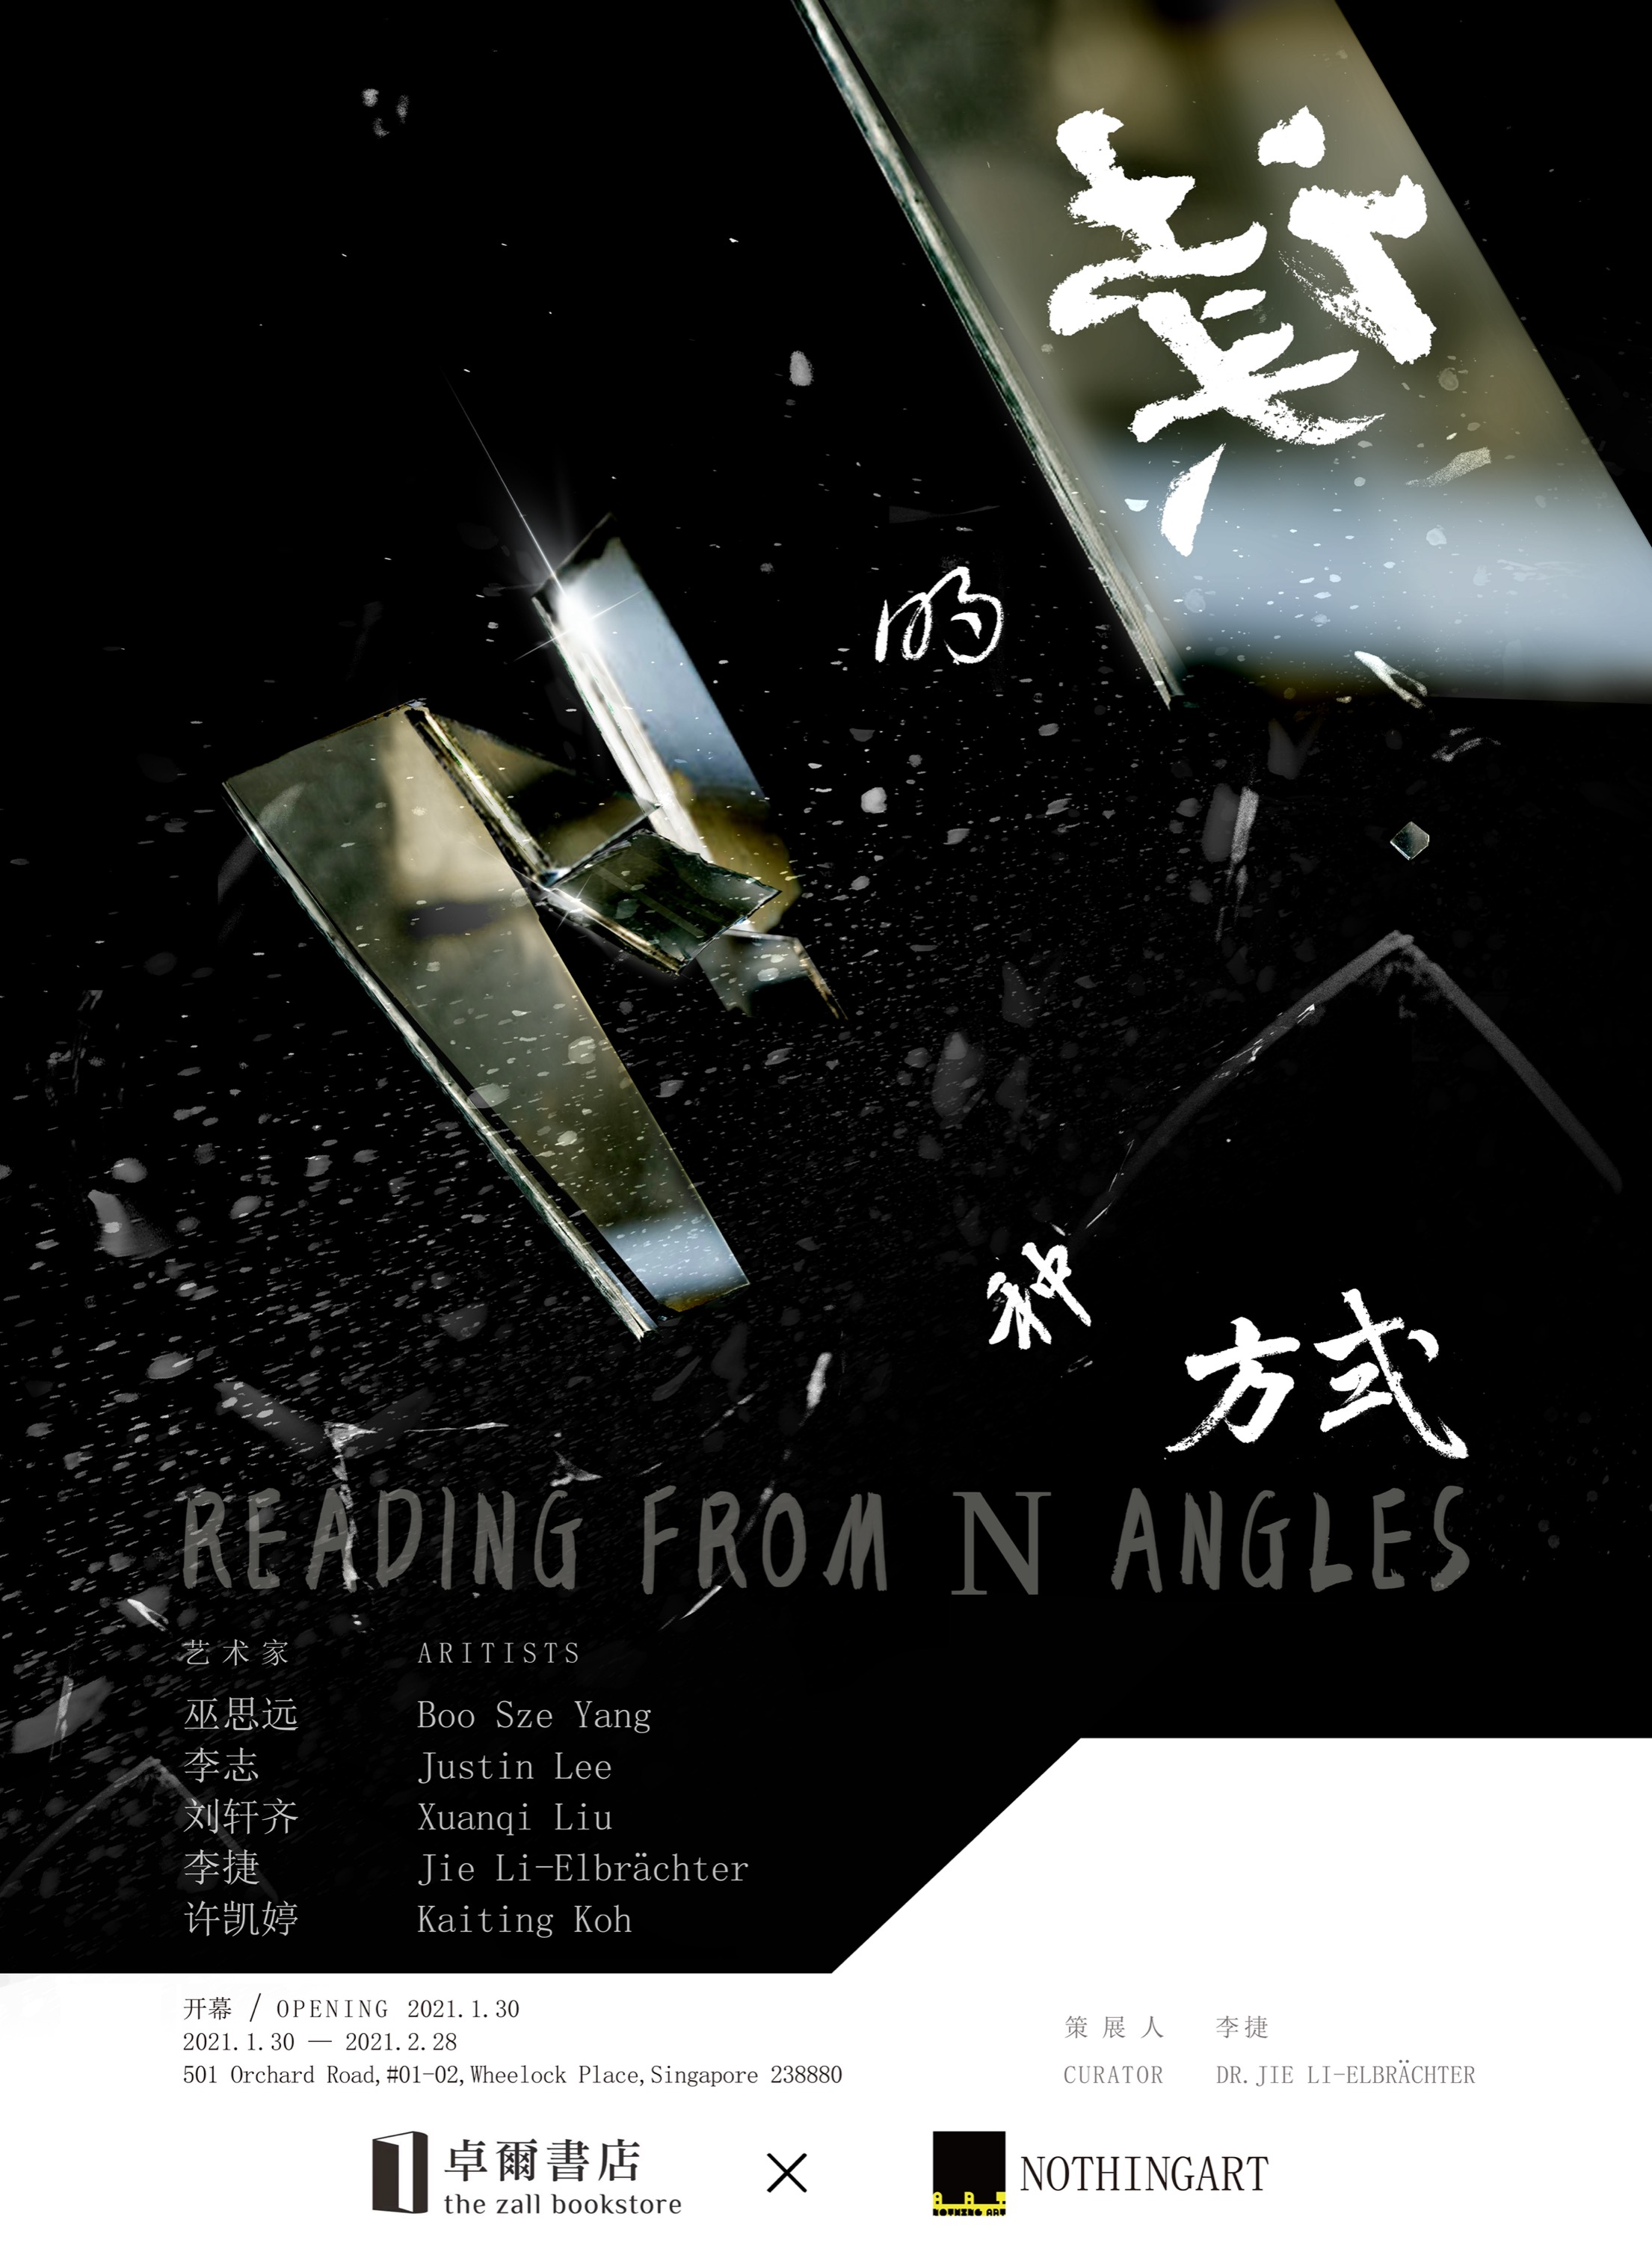 READING FROM N ANGLES